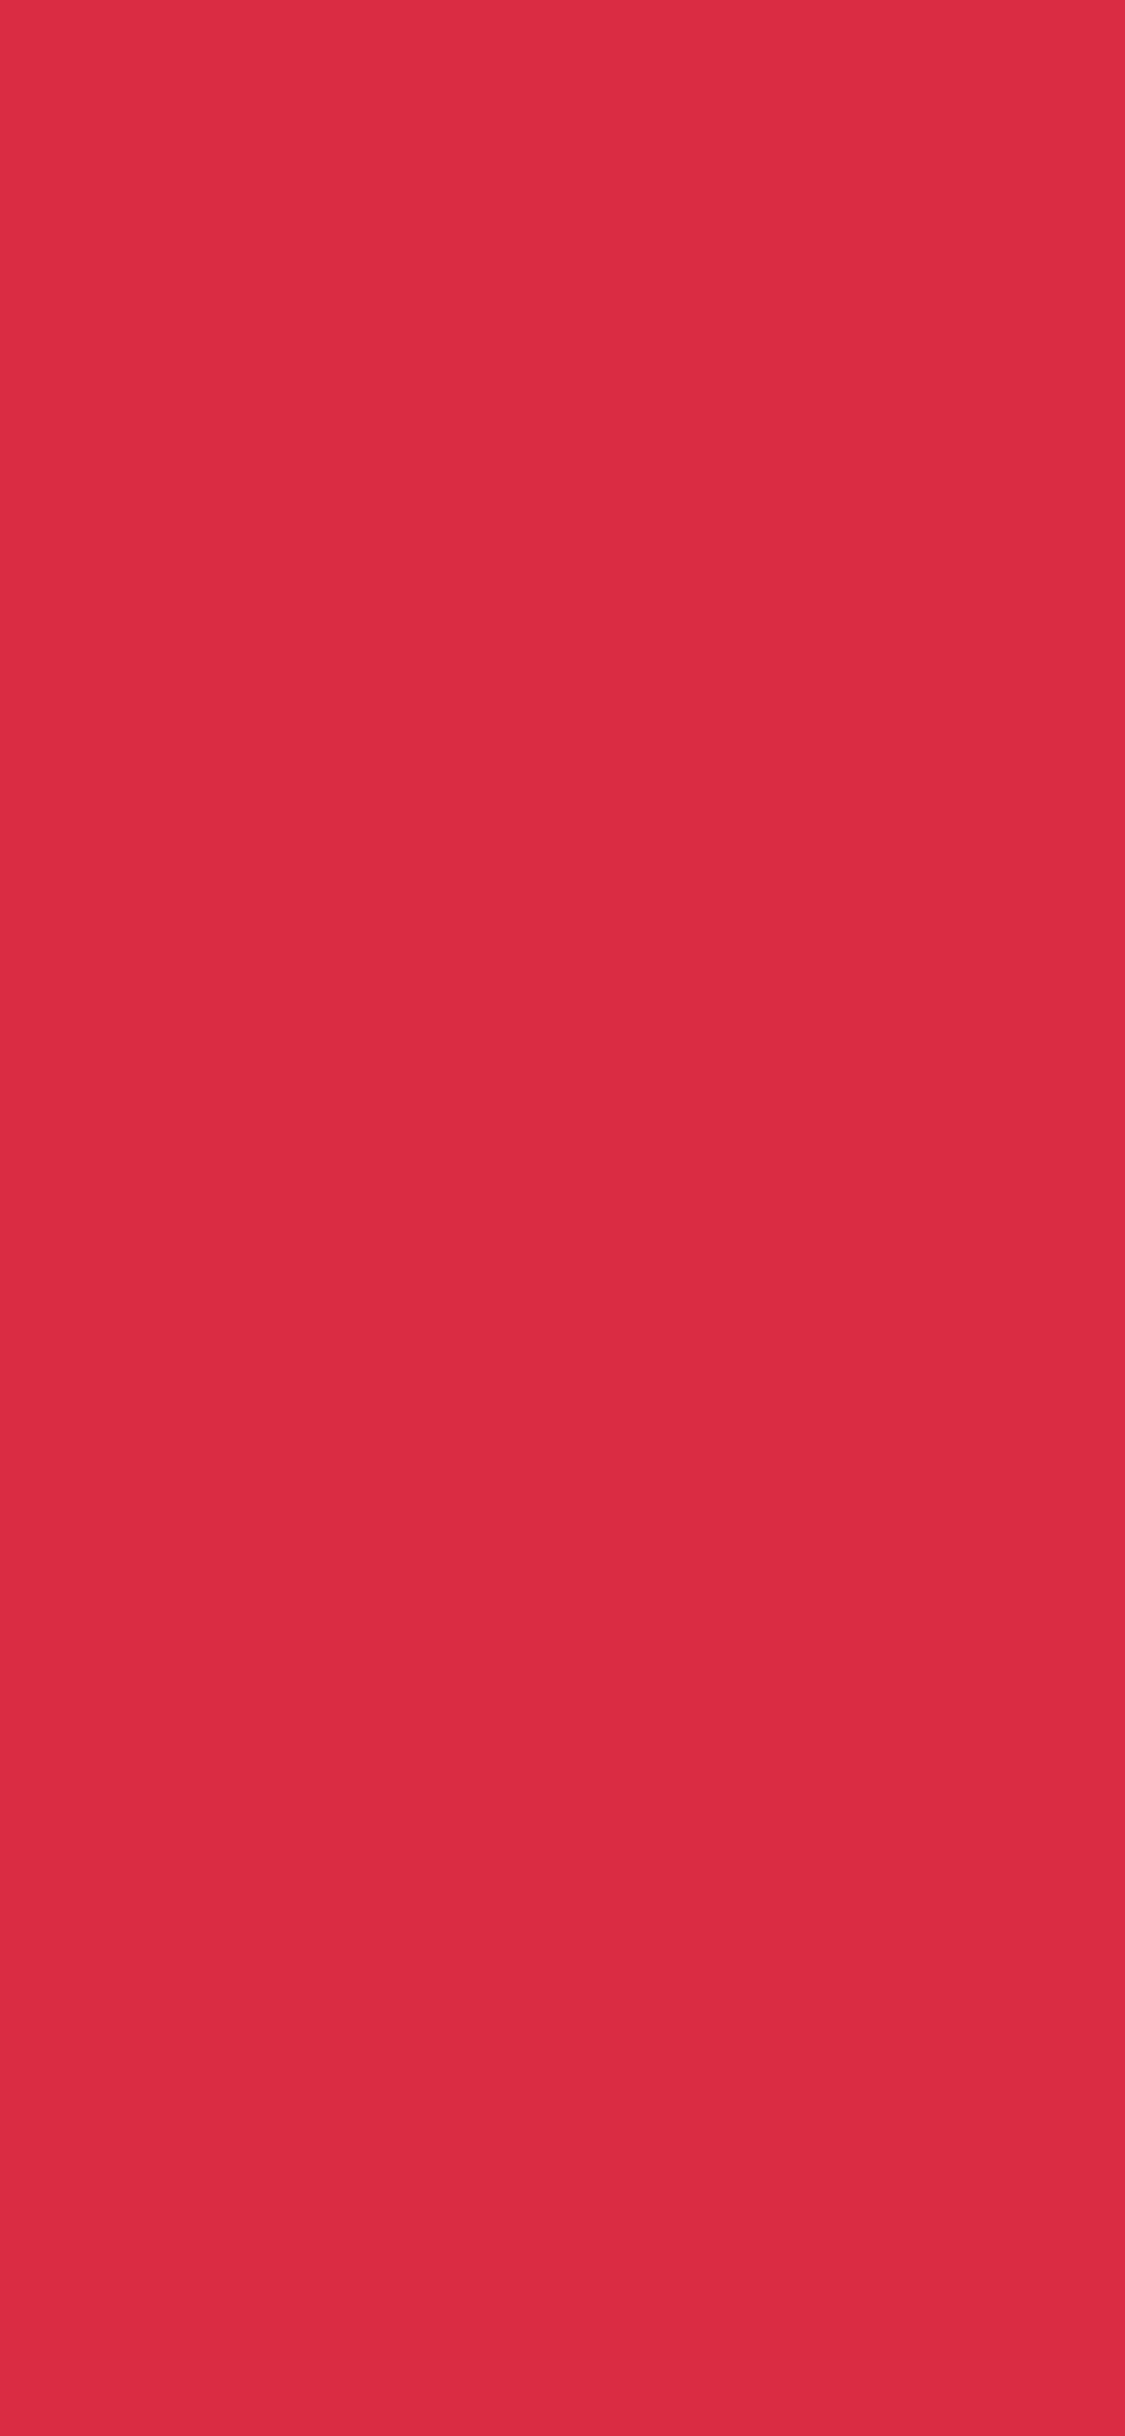 1125x2436 Rusty Red Solid Color Background